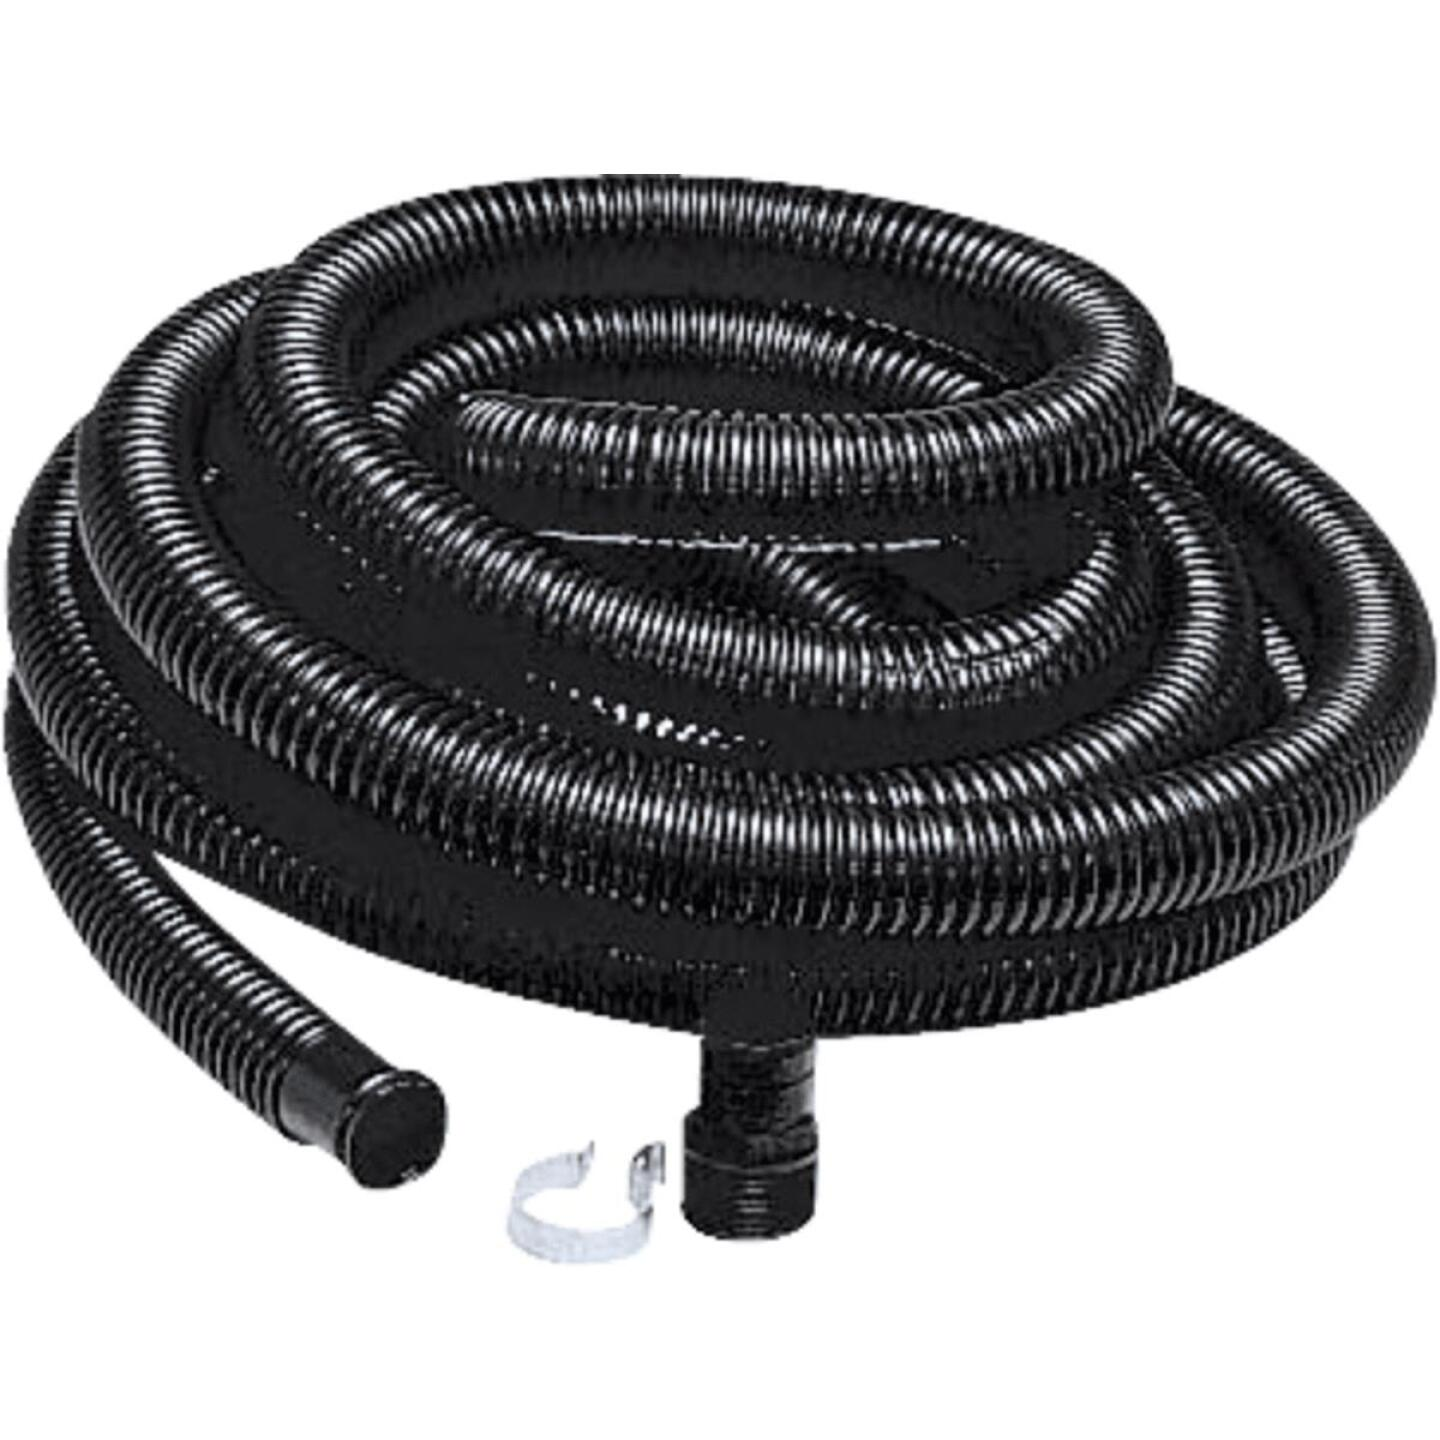 Prinsco 1-1/4 In. Sump Pump Hose Kit Image 1